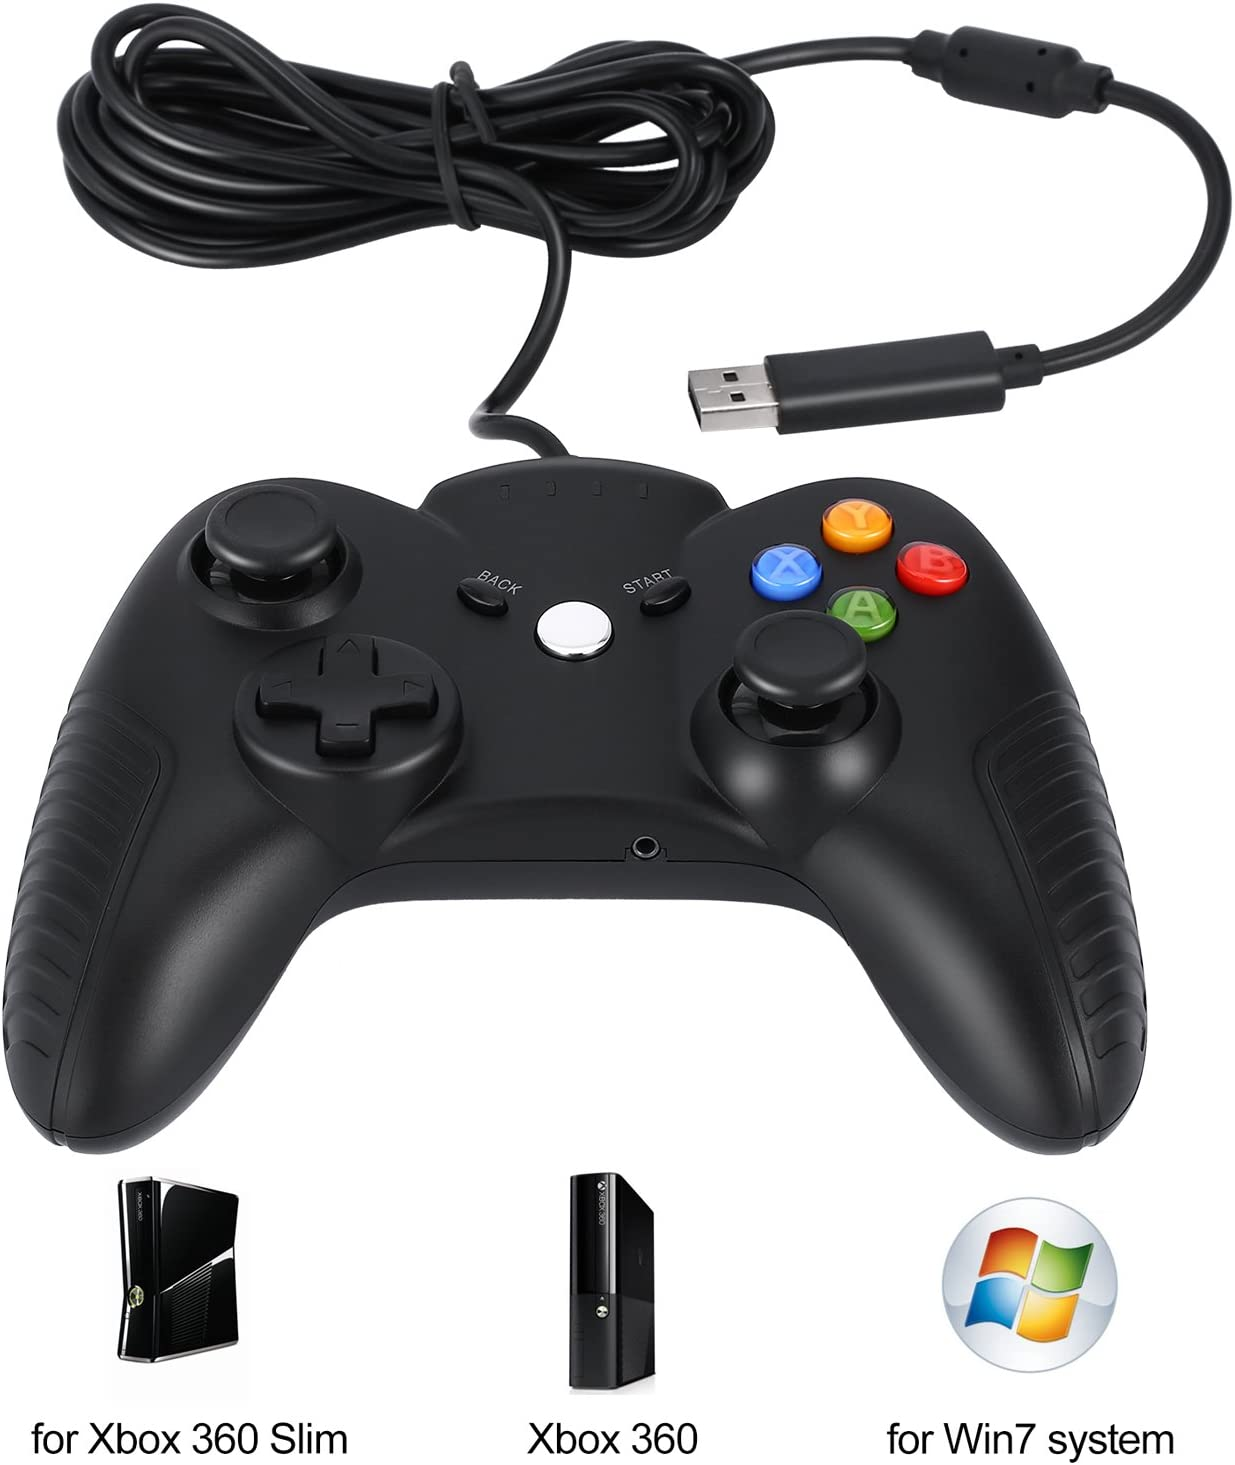 YKS Mando Xbox 360 con Cable USB Controlador Gaming para Microsoft Xbox 360 PC Windows 7, Joystick Plug and Play: Amazon.es: Videojuegos